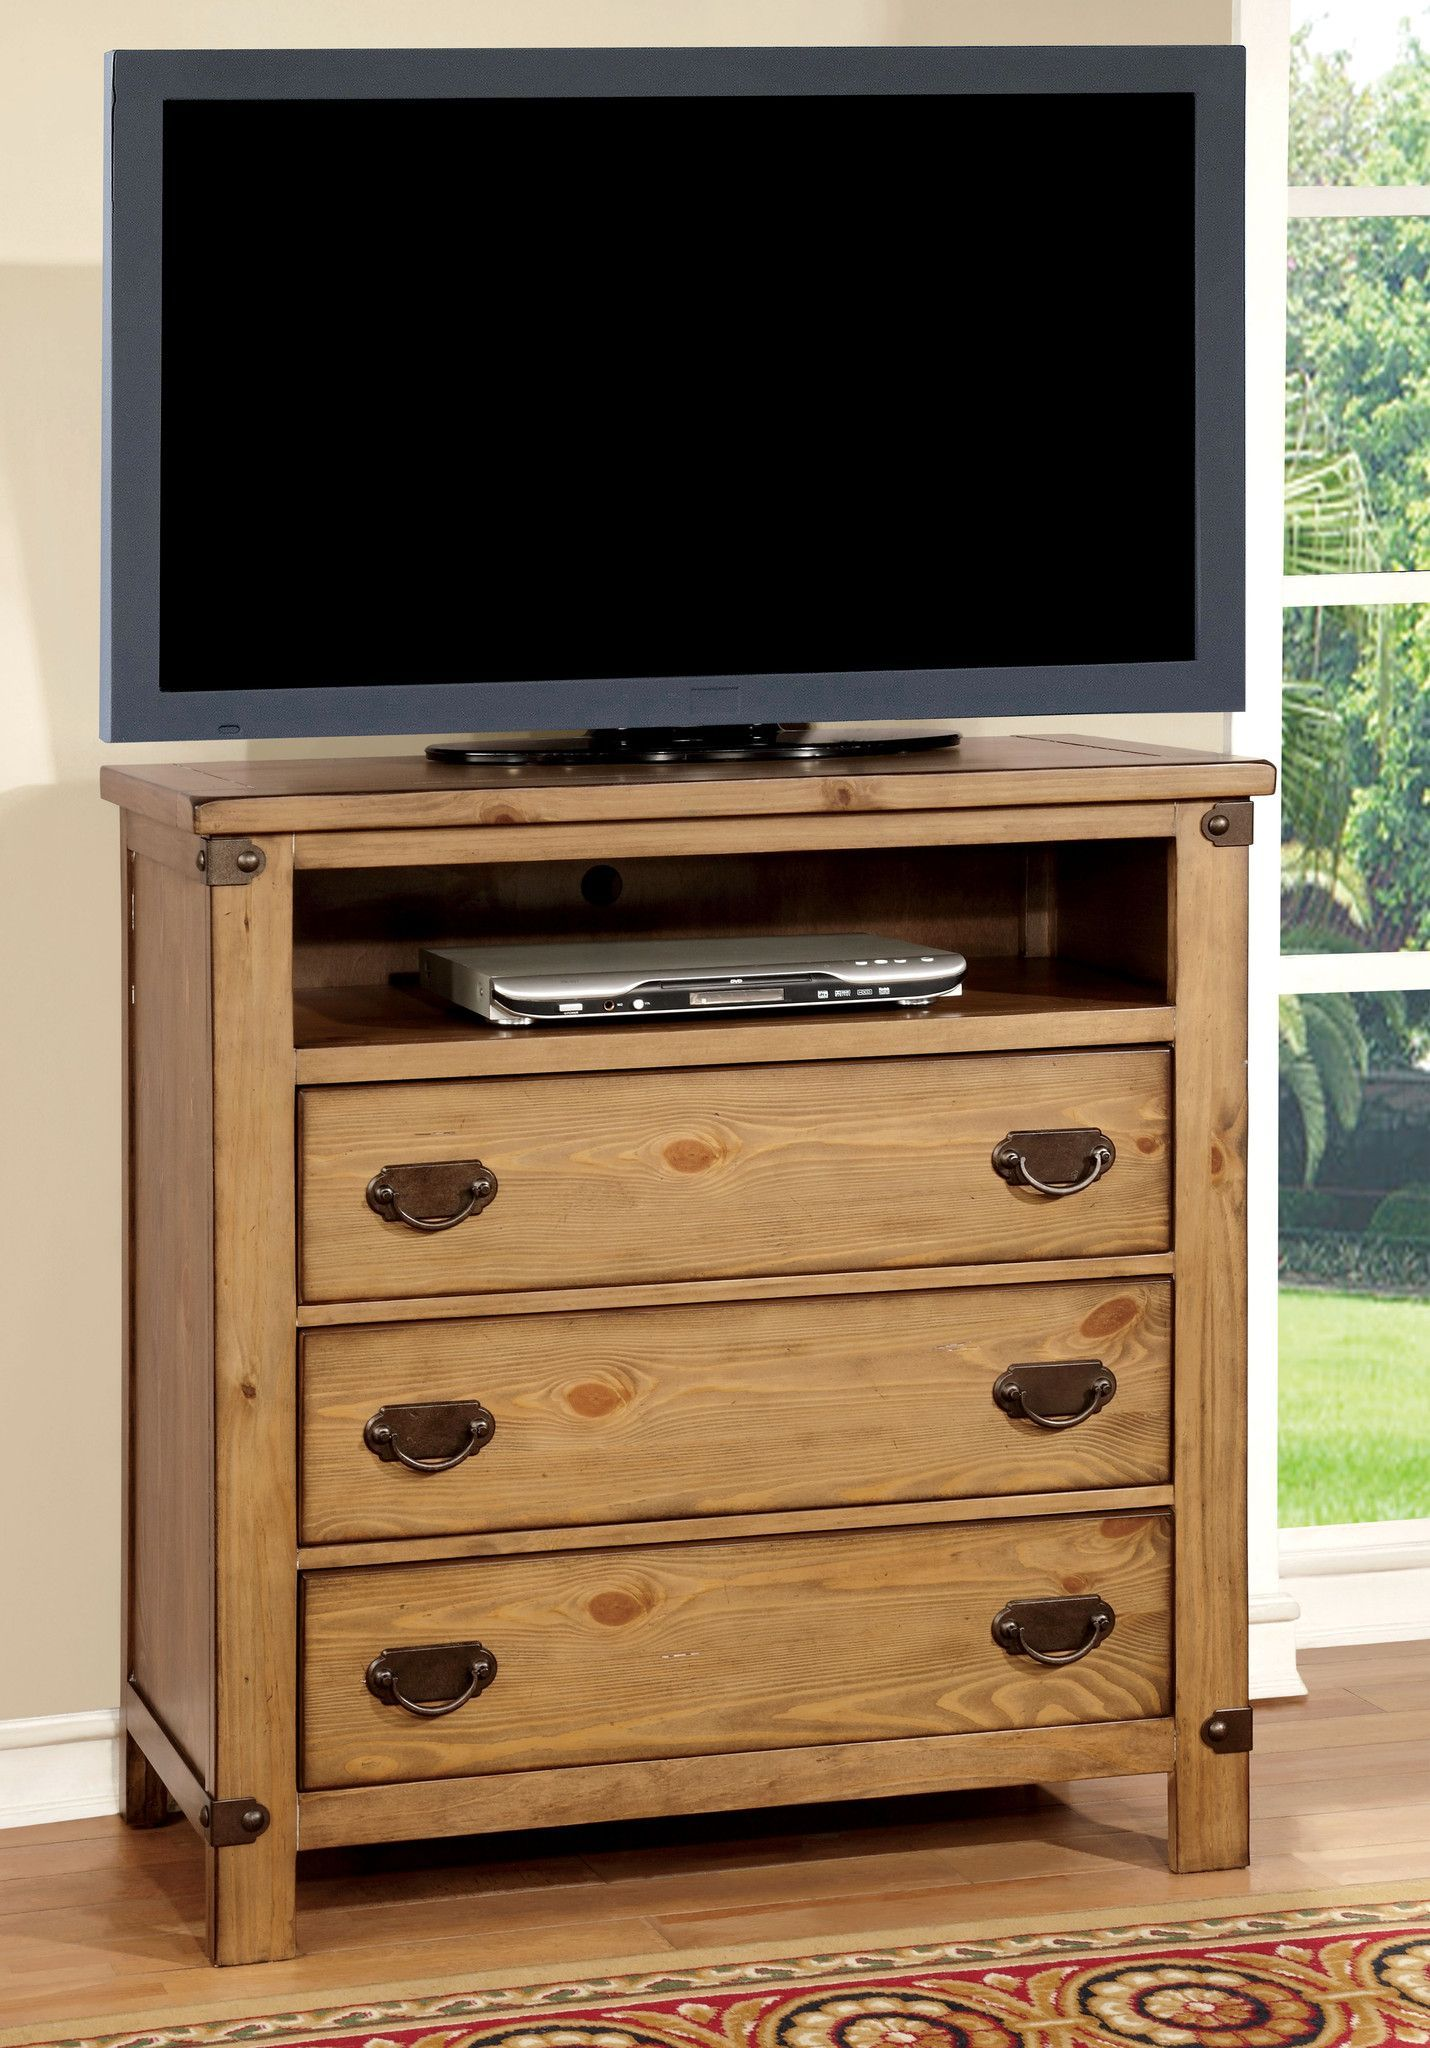 Himmel Country Style Tv Console Burnished Pine